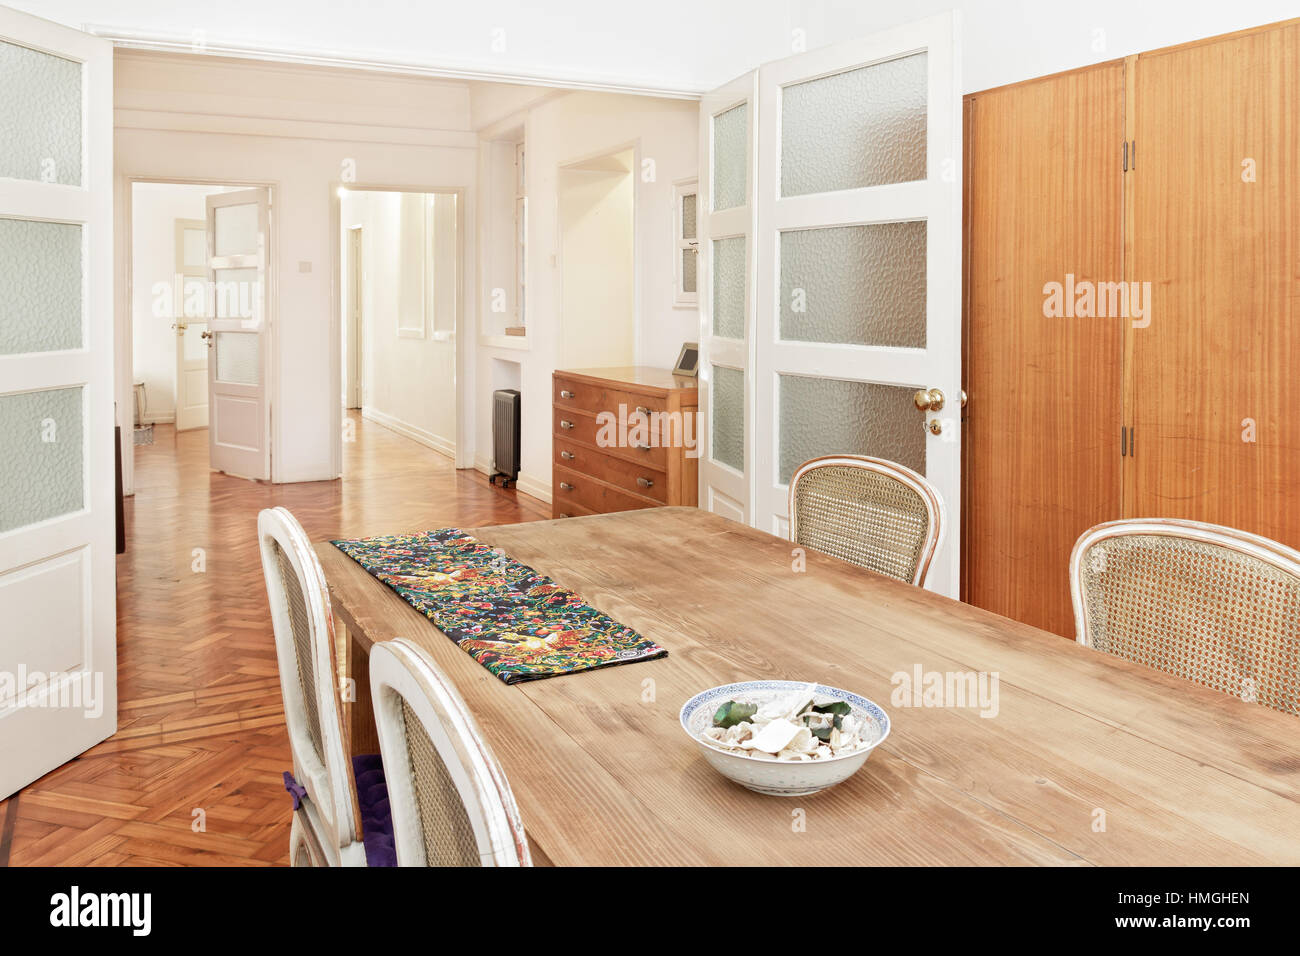 Salle A Manger Retro Elegant Banque D Images Photo Stock